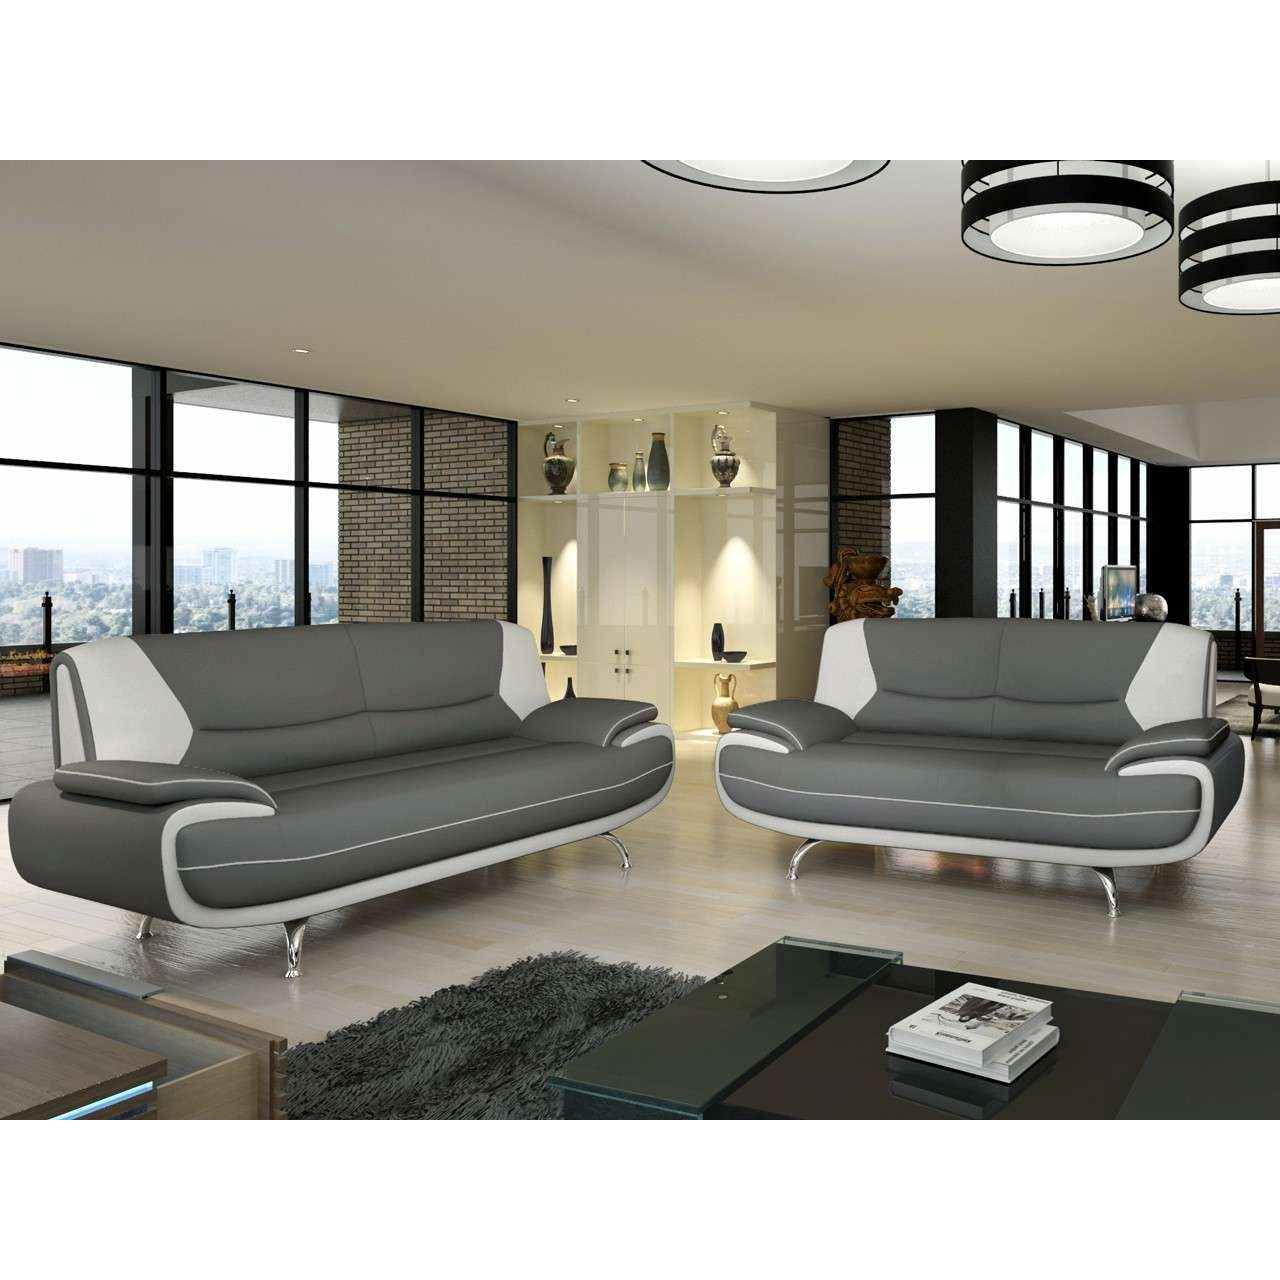 deco in paris canape 2 places design gris et blanc. Black Bedroom Furniture Sets. Home Design Ideas